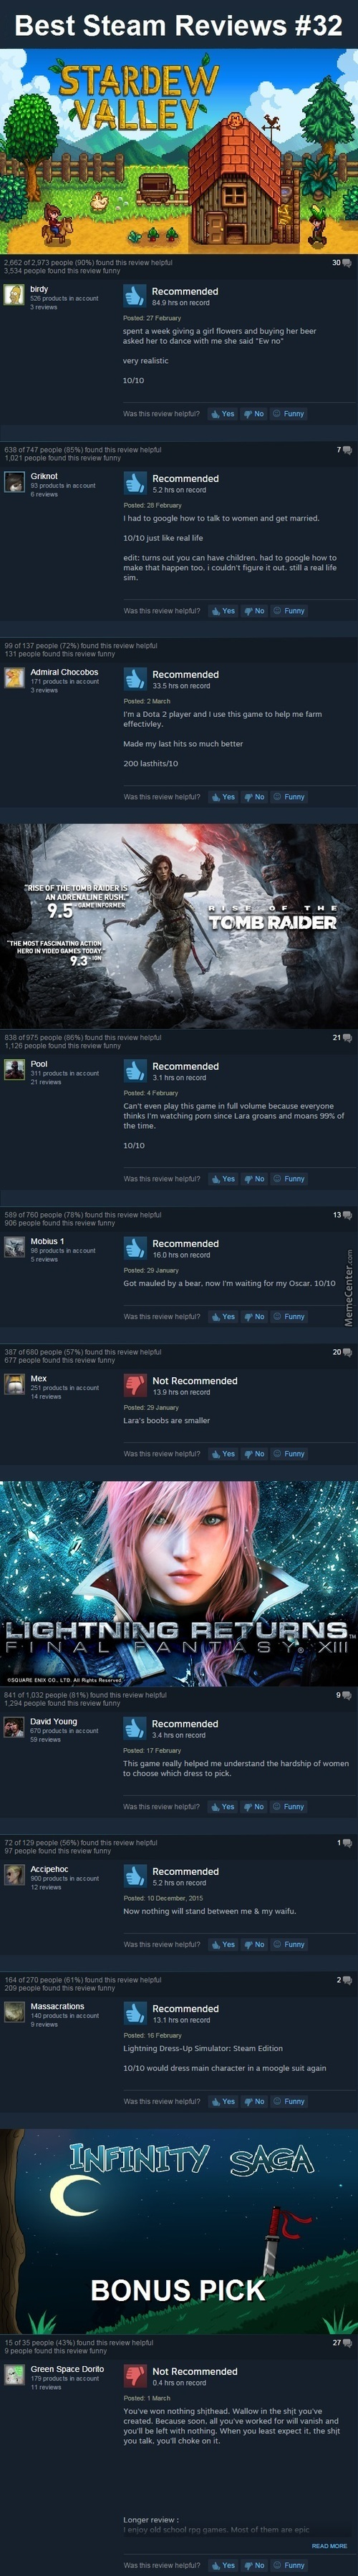 Best Steam Reviews #32 - The Arcticfox Bandwagon